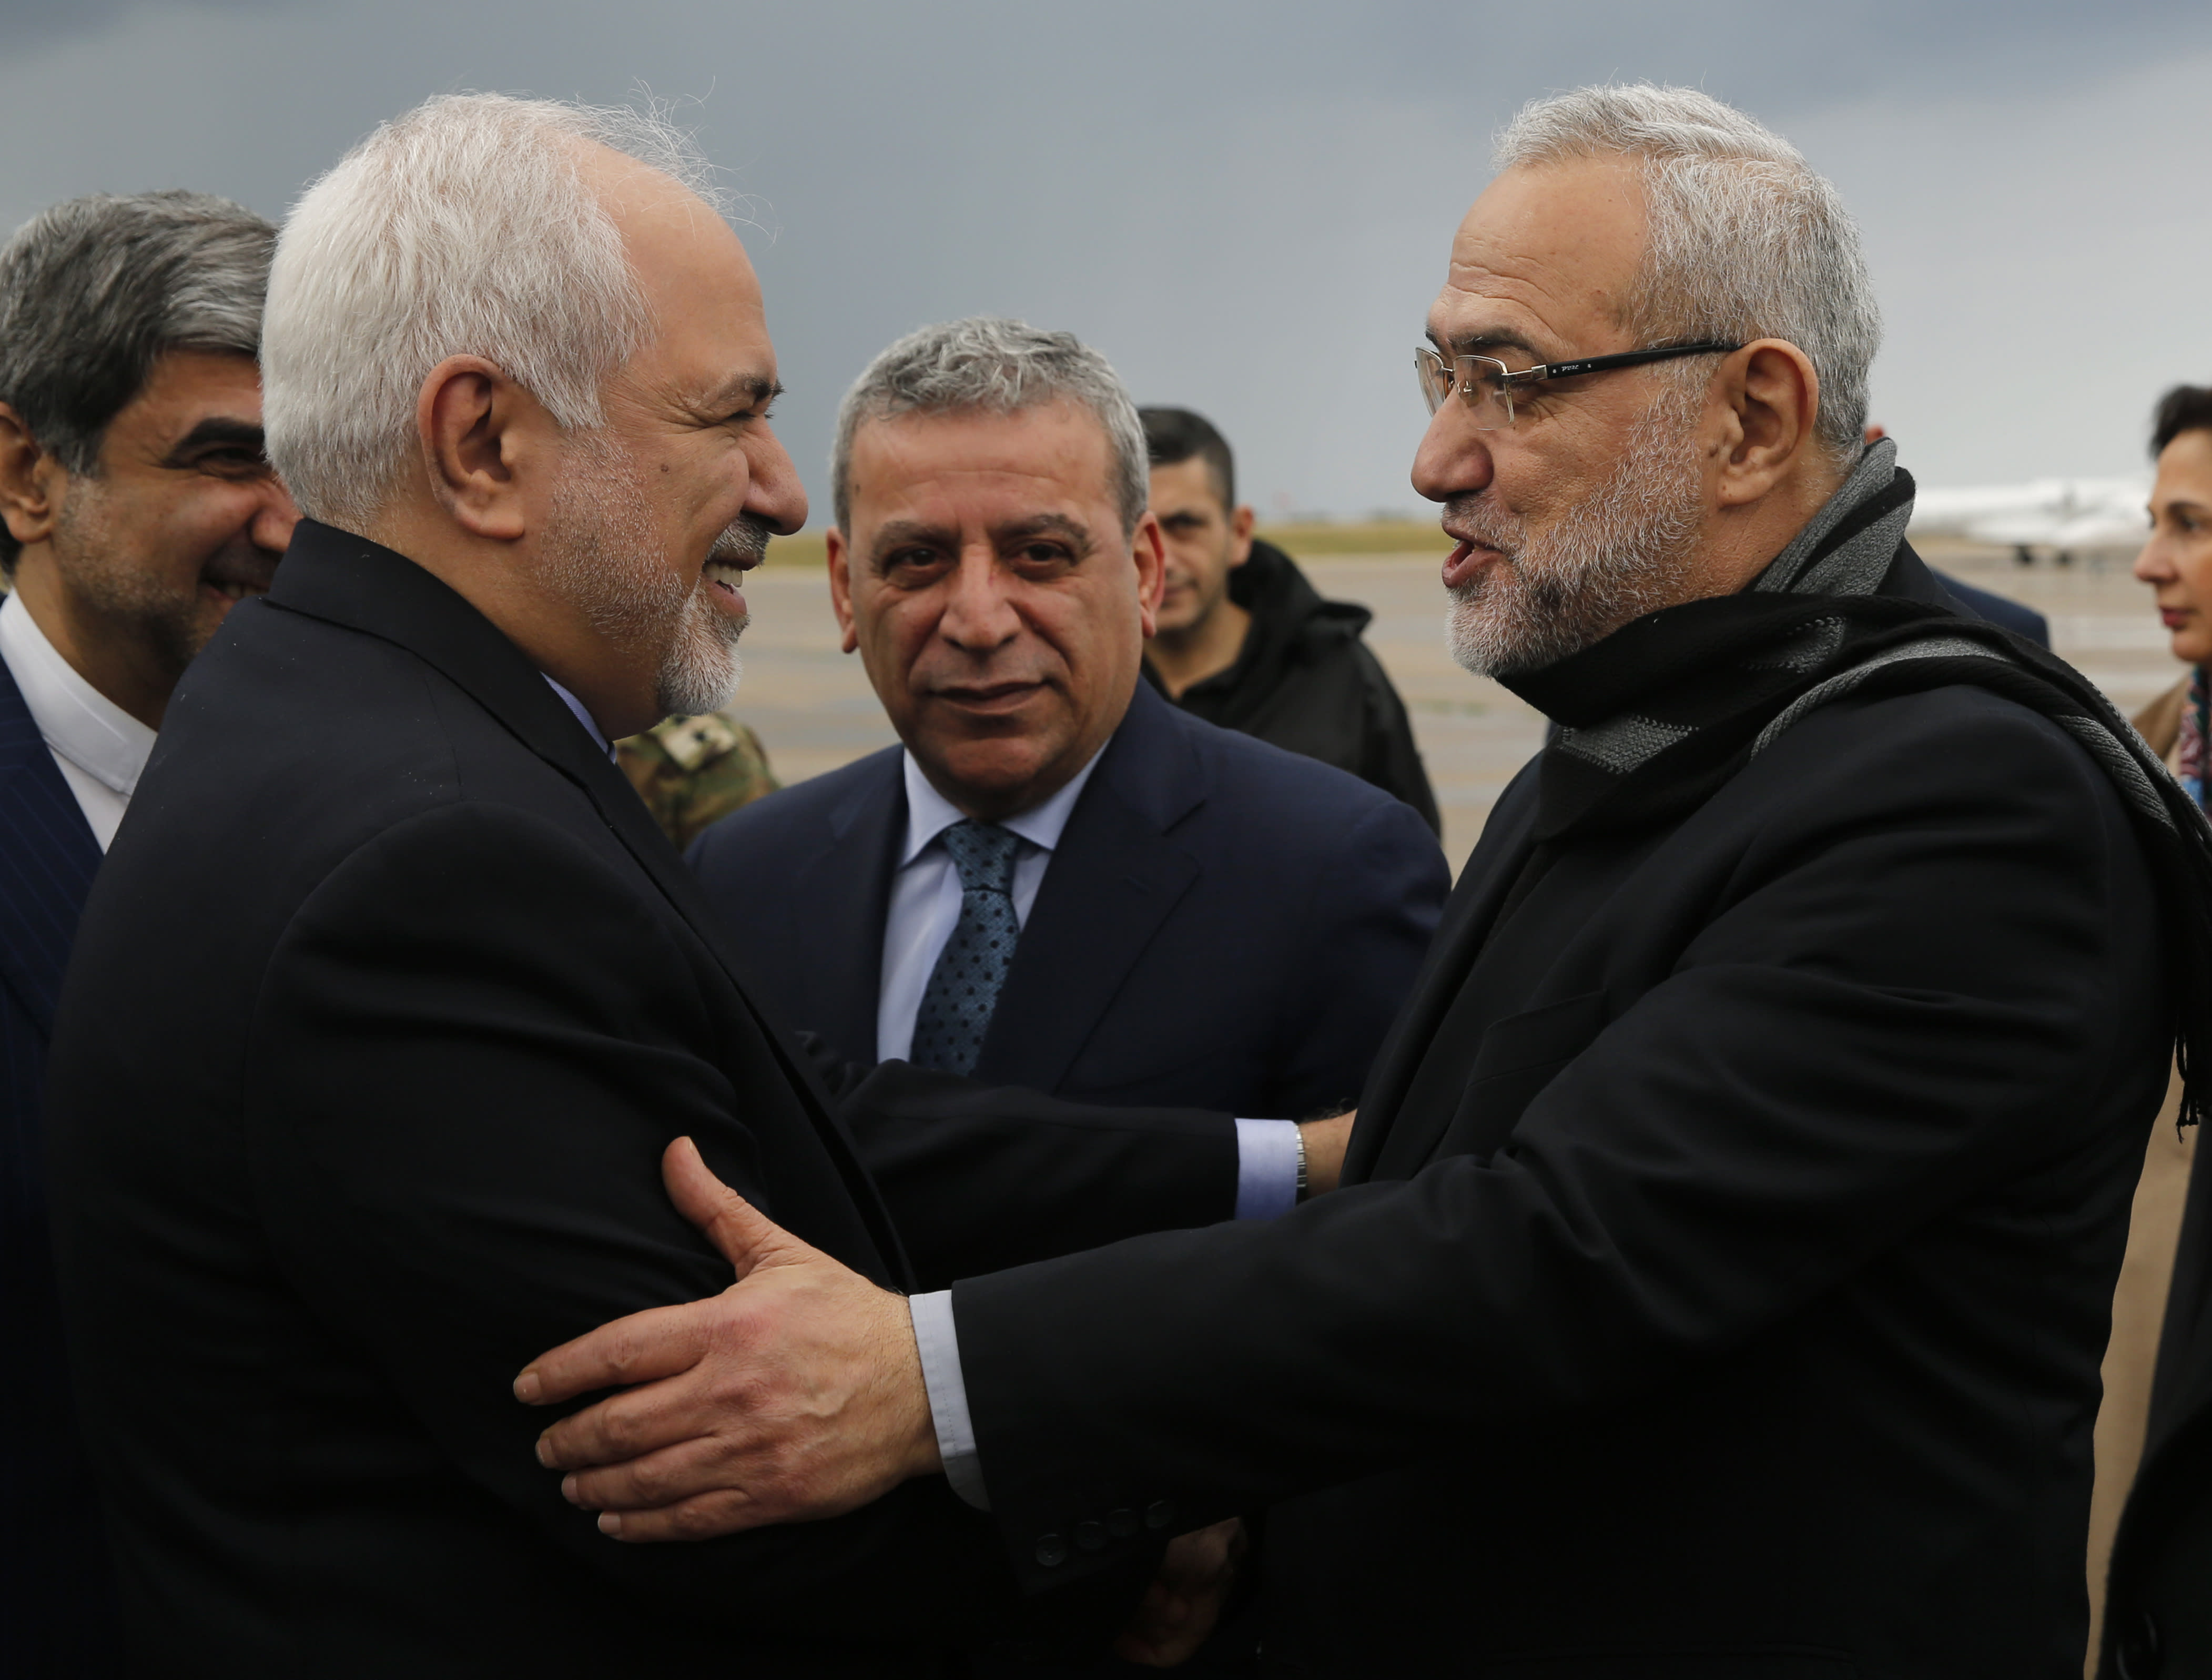 Iran's Foreign Minister Mohammad Javad Zarif, left, is greeted by Lebanese Minister of State Parliamentary Affairs and a member of Hezbollah politicians block Mahmoud Qmati, right, on his arrival at Rafik Hariri Airport, in Beirut, Lebanon, Sunday, Feb. 10, 2019. Zarif says his country is ready to cooperate with the new Lebanese government, offering his country's support in all sectors. (AP Photo/Hussein Malla)